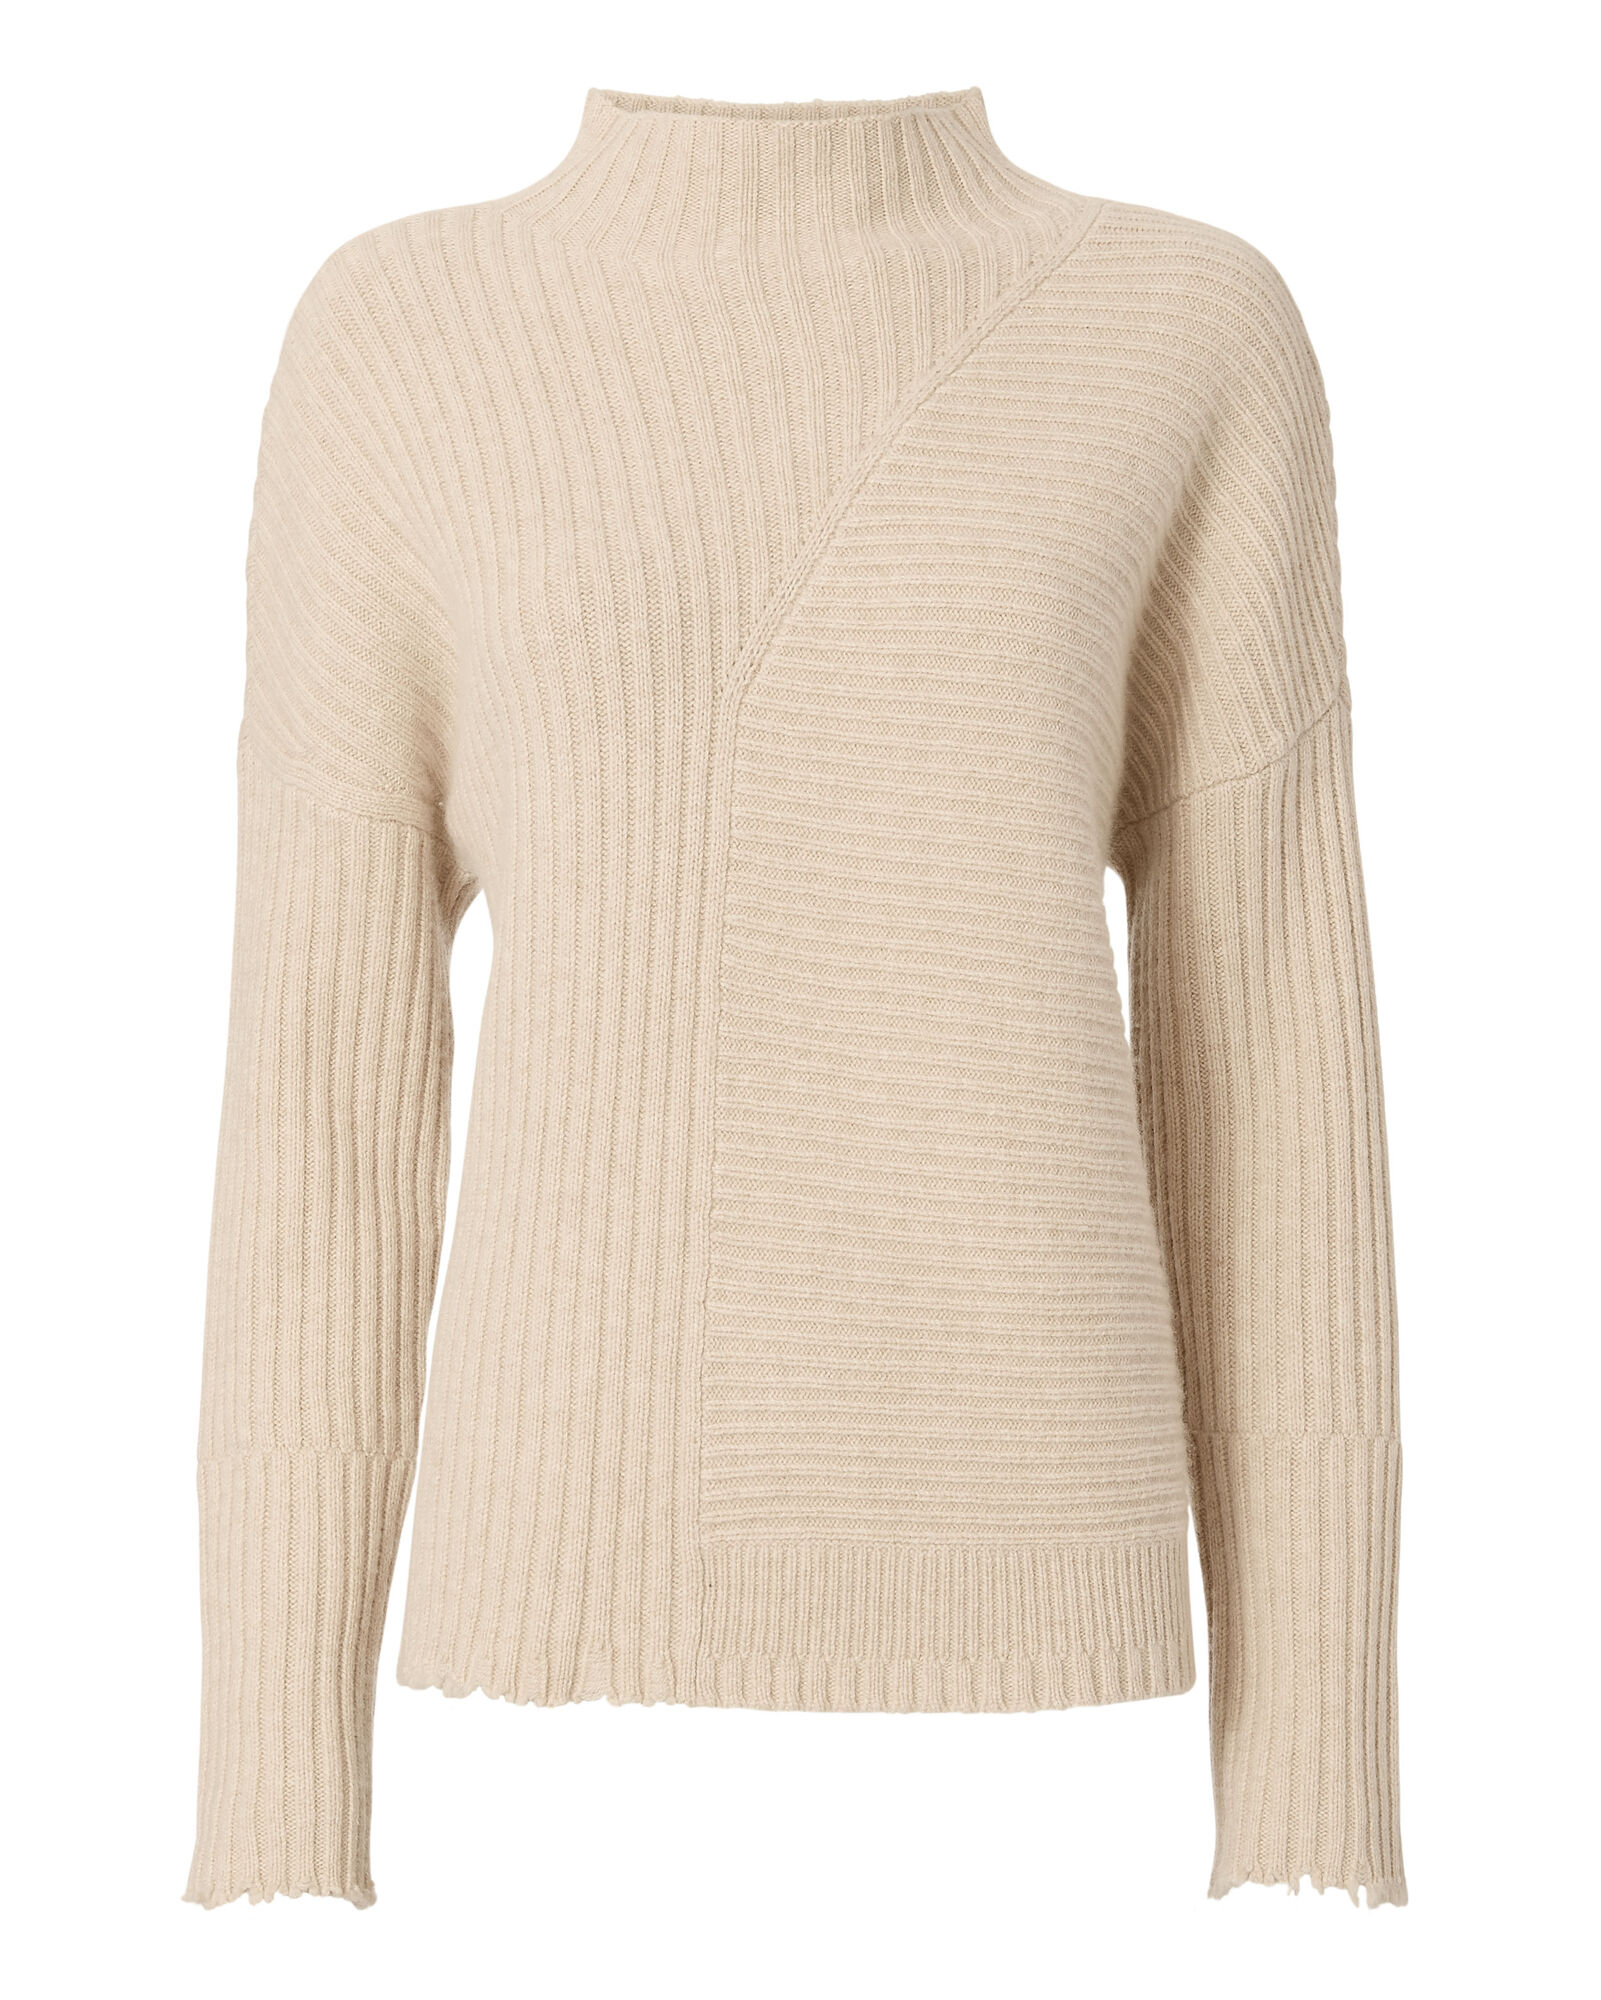 Preston Distressed Funnel Neck Sweater, BEIGE, hi-res